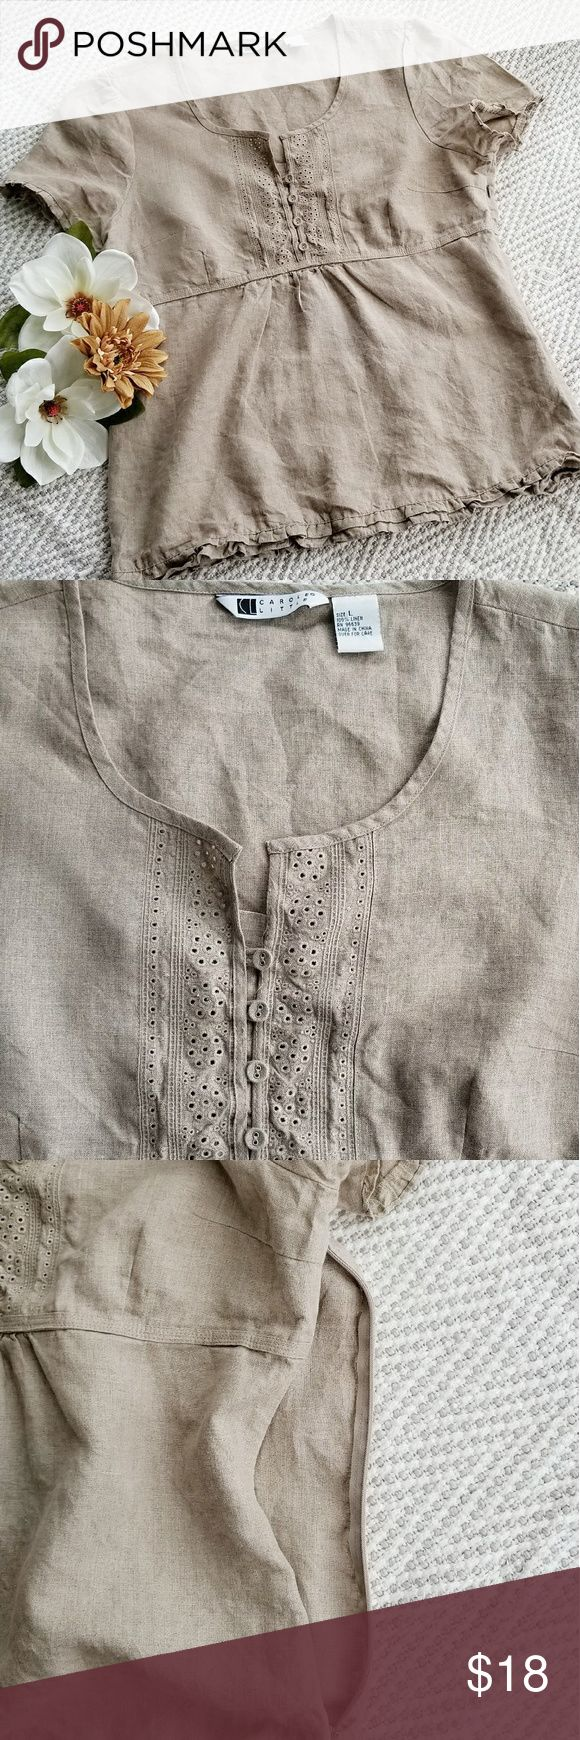 Carole Little Ruffle Linen Top Ruffle details at hem and sleeves, side zipper, 4 front buttons Adorable top. %100 Linen. Large size. Tan color. Excellent Condition Carole Little Tops Blouses